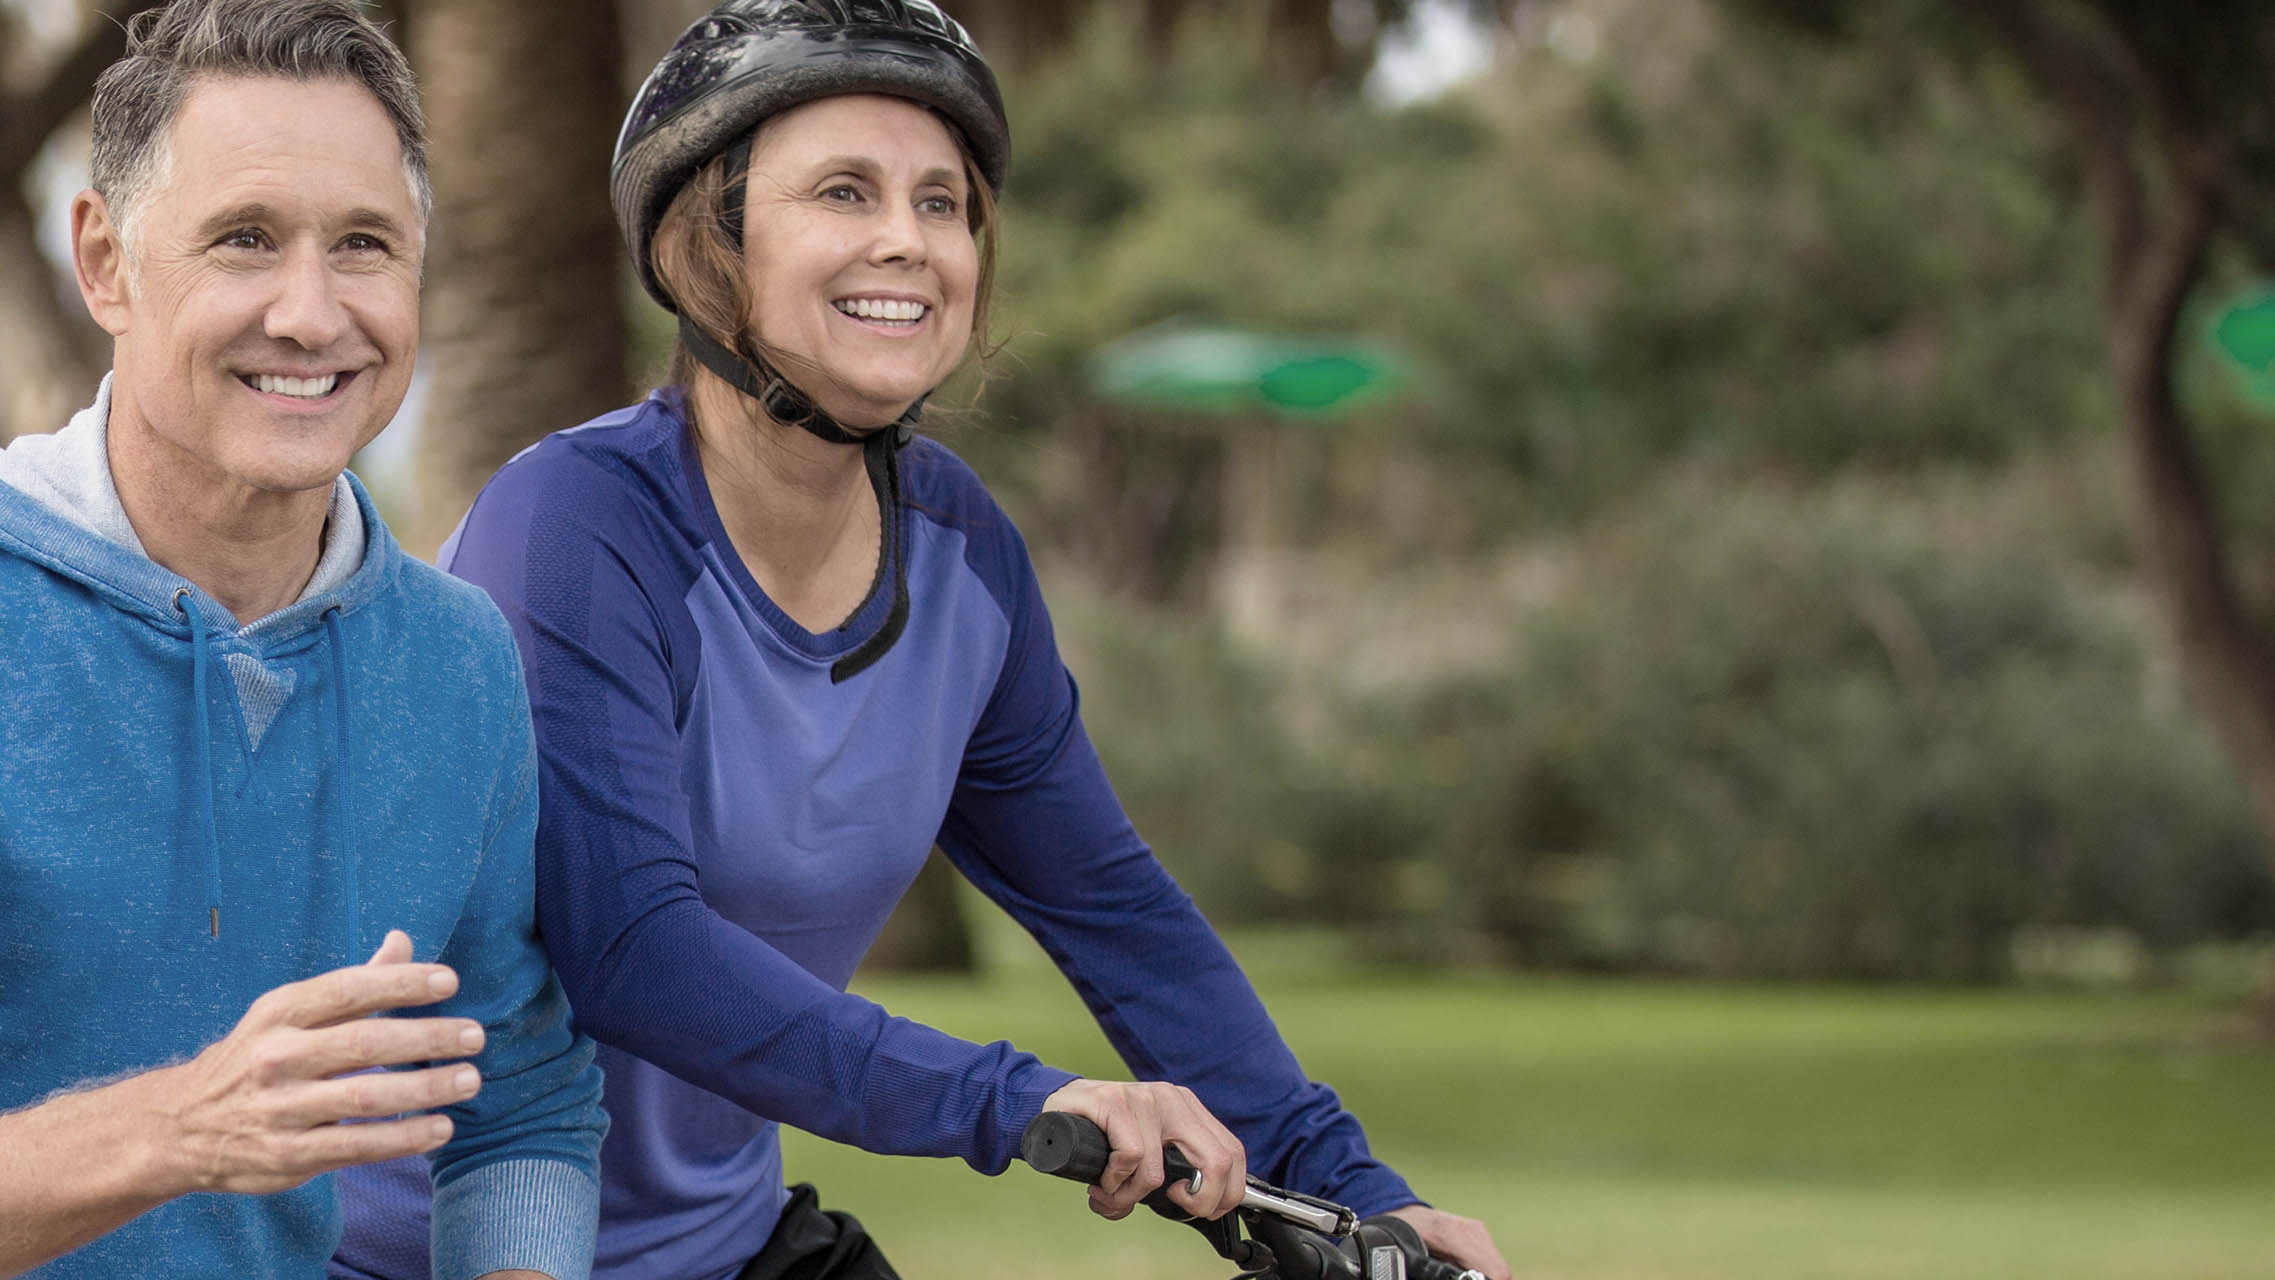 Older couple staying fit together